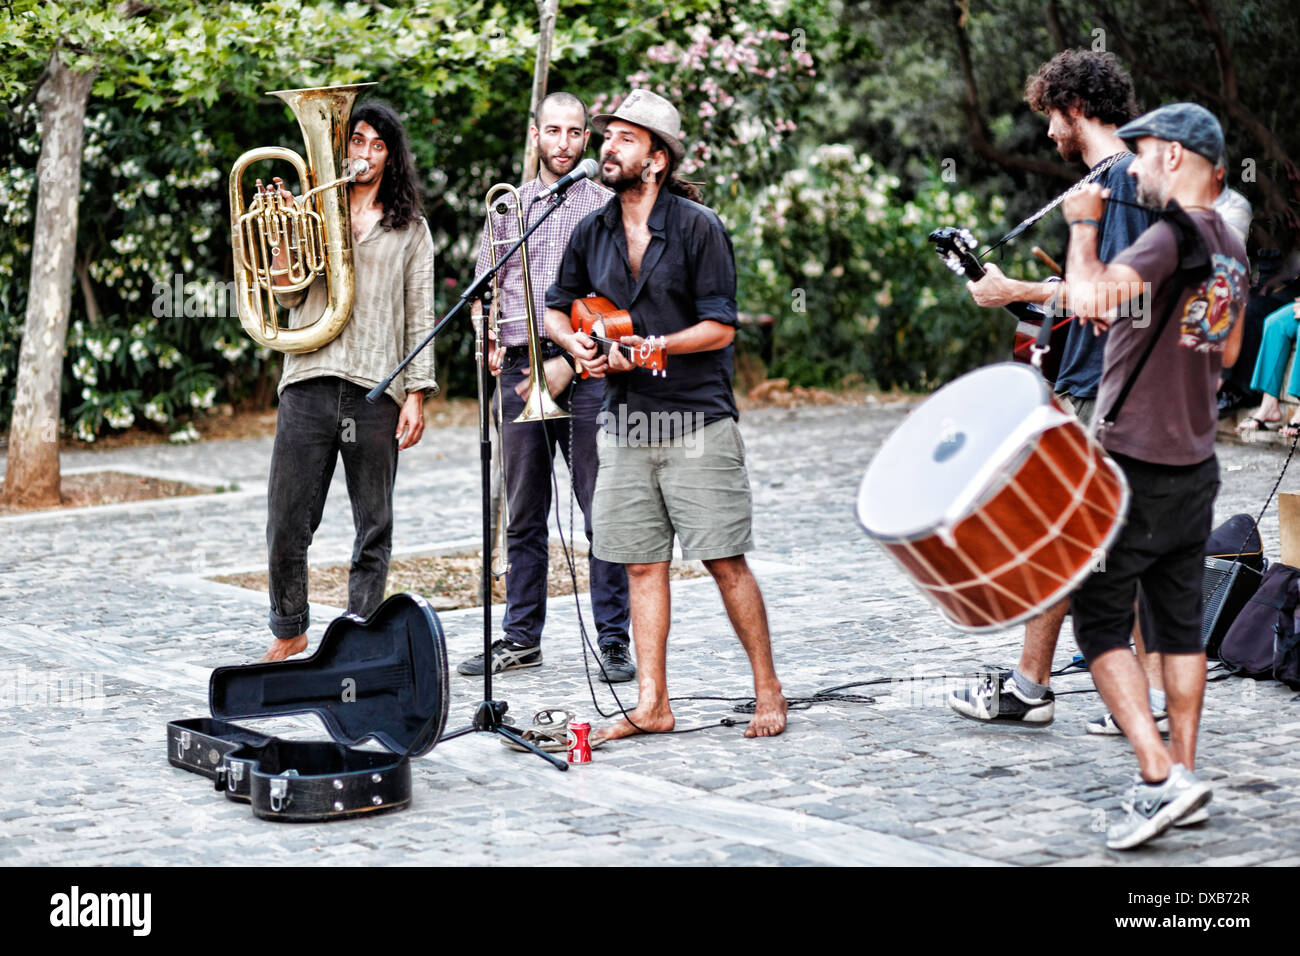 Musicians playing in the street of Athens, Greece - Stock Image